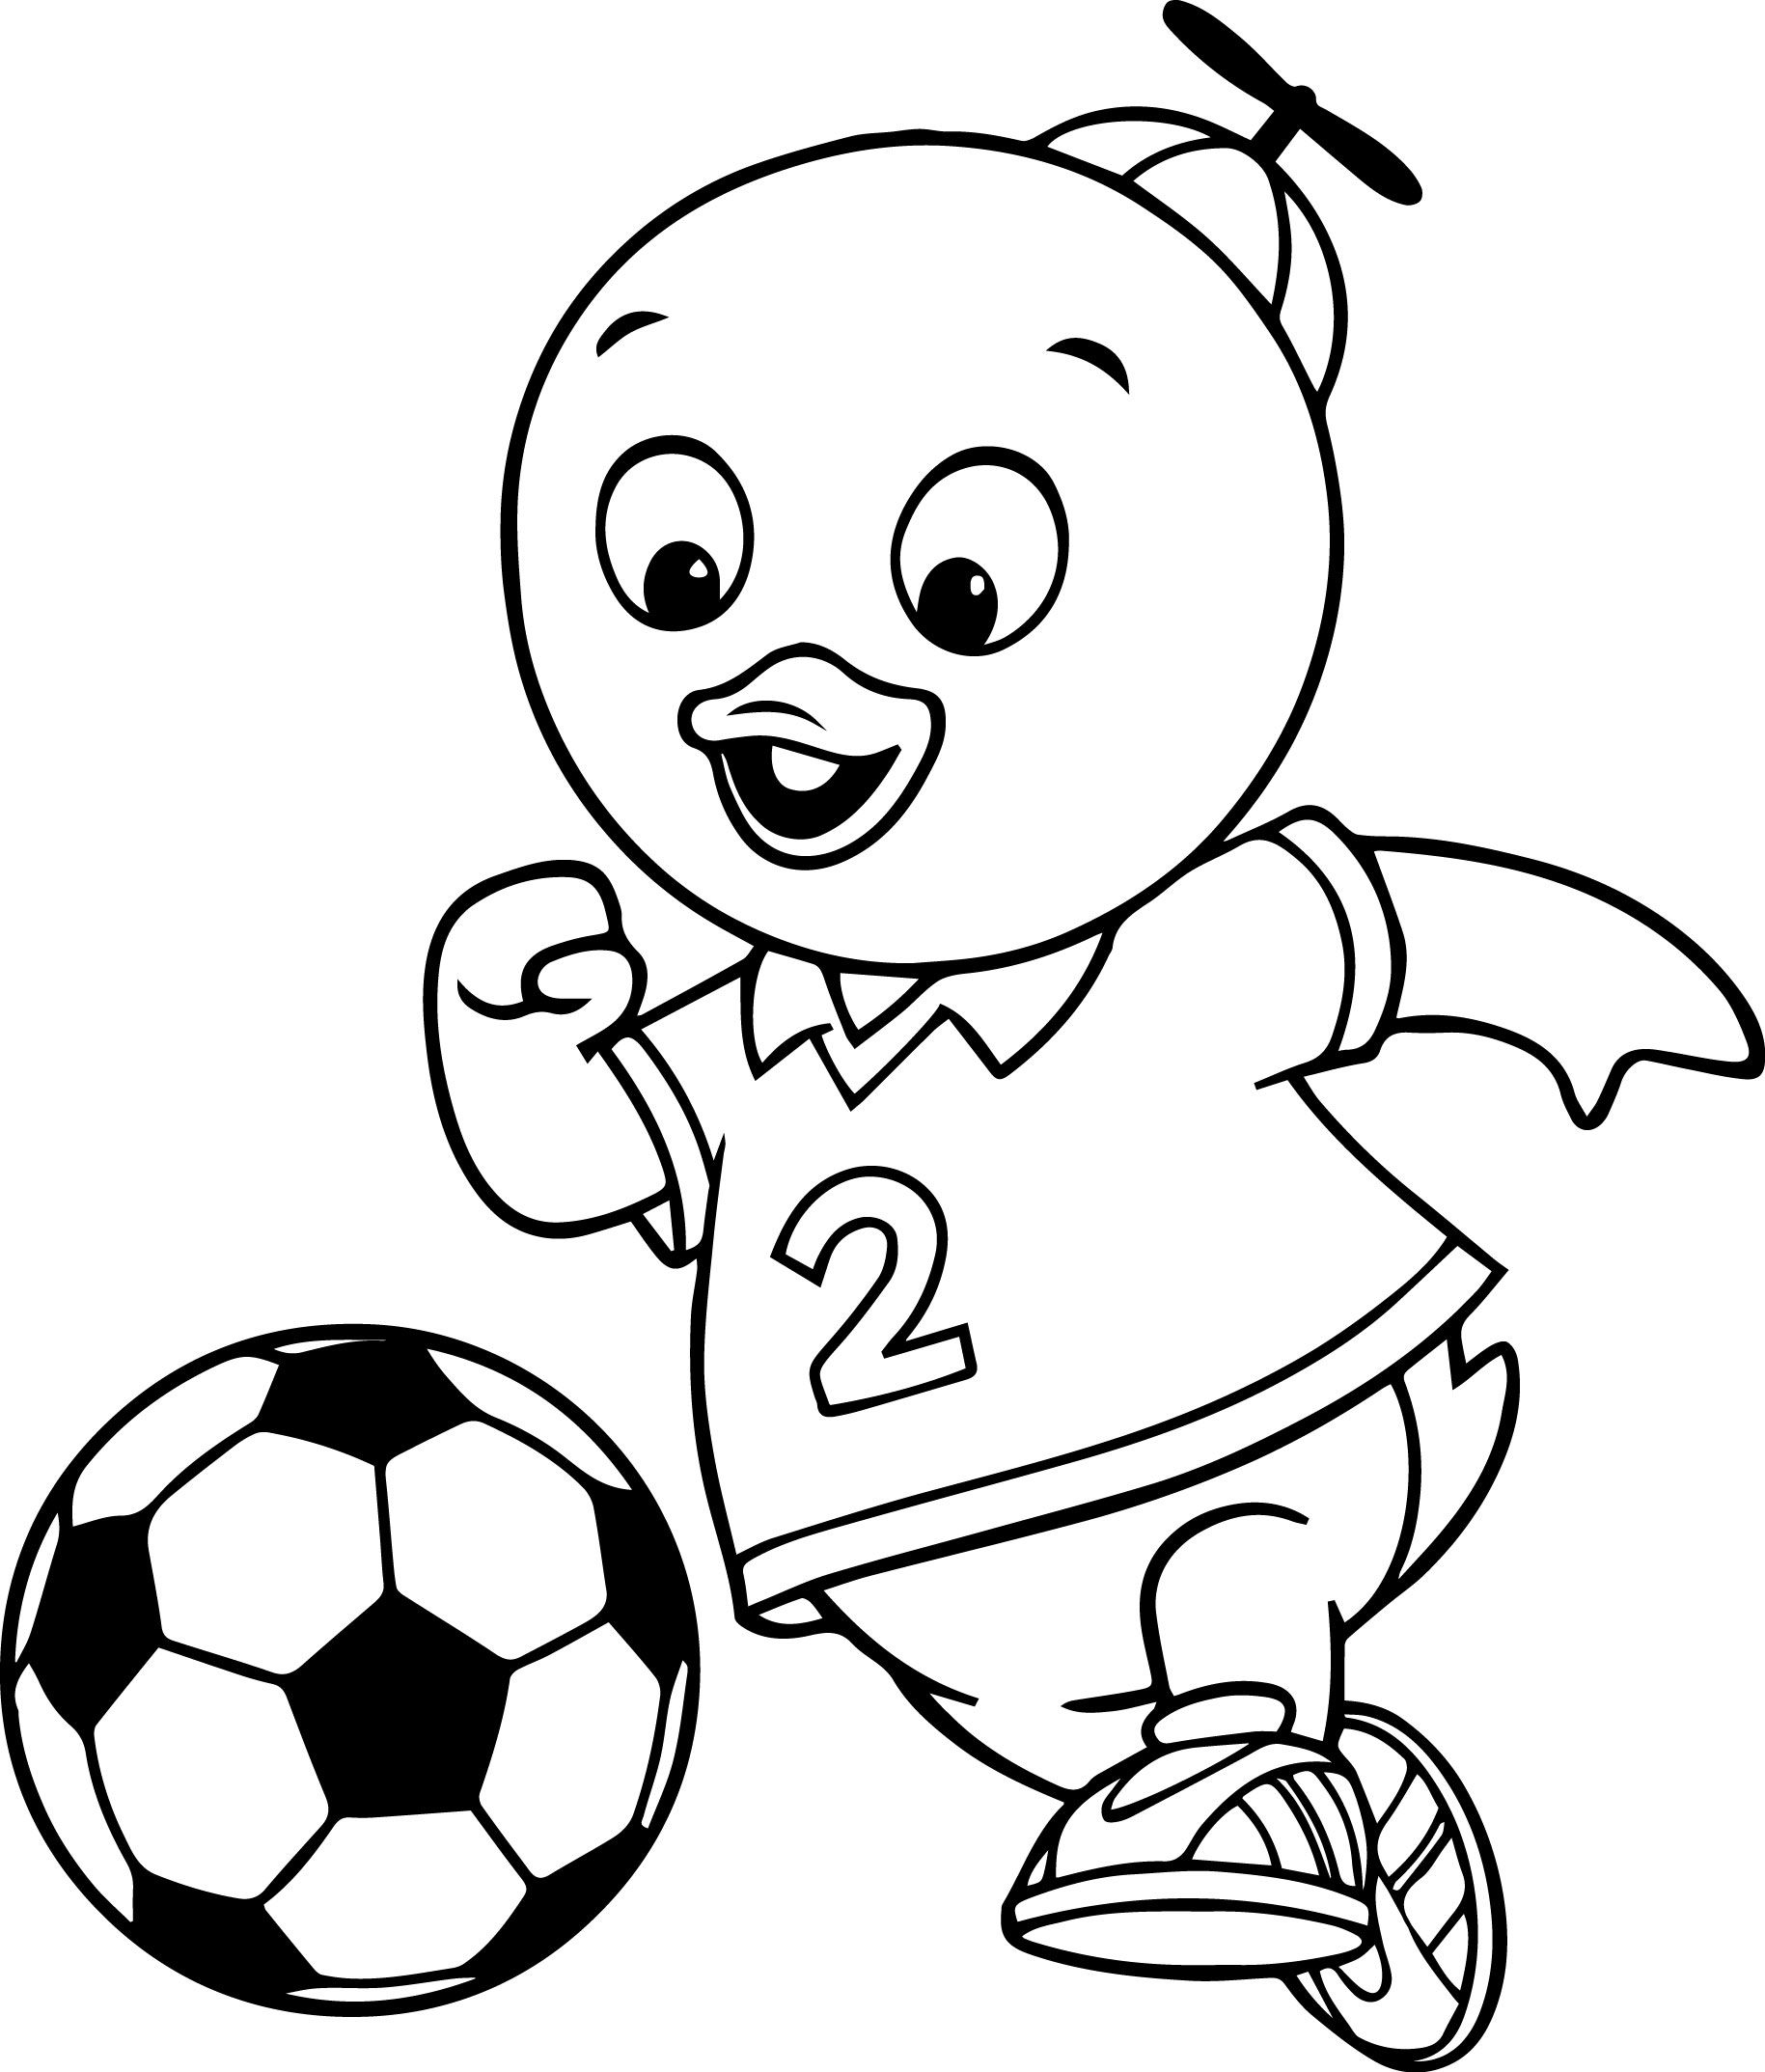 the backyardigans pablo playing soccer coloring page